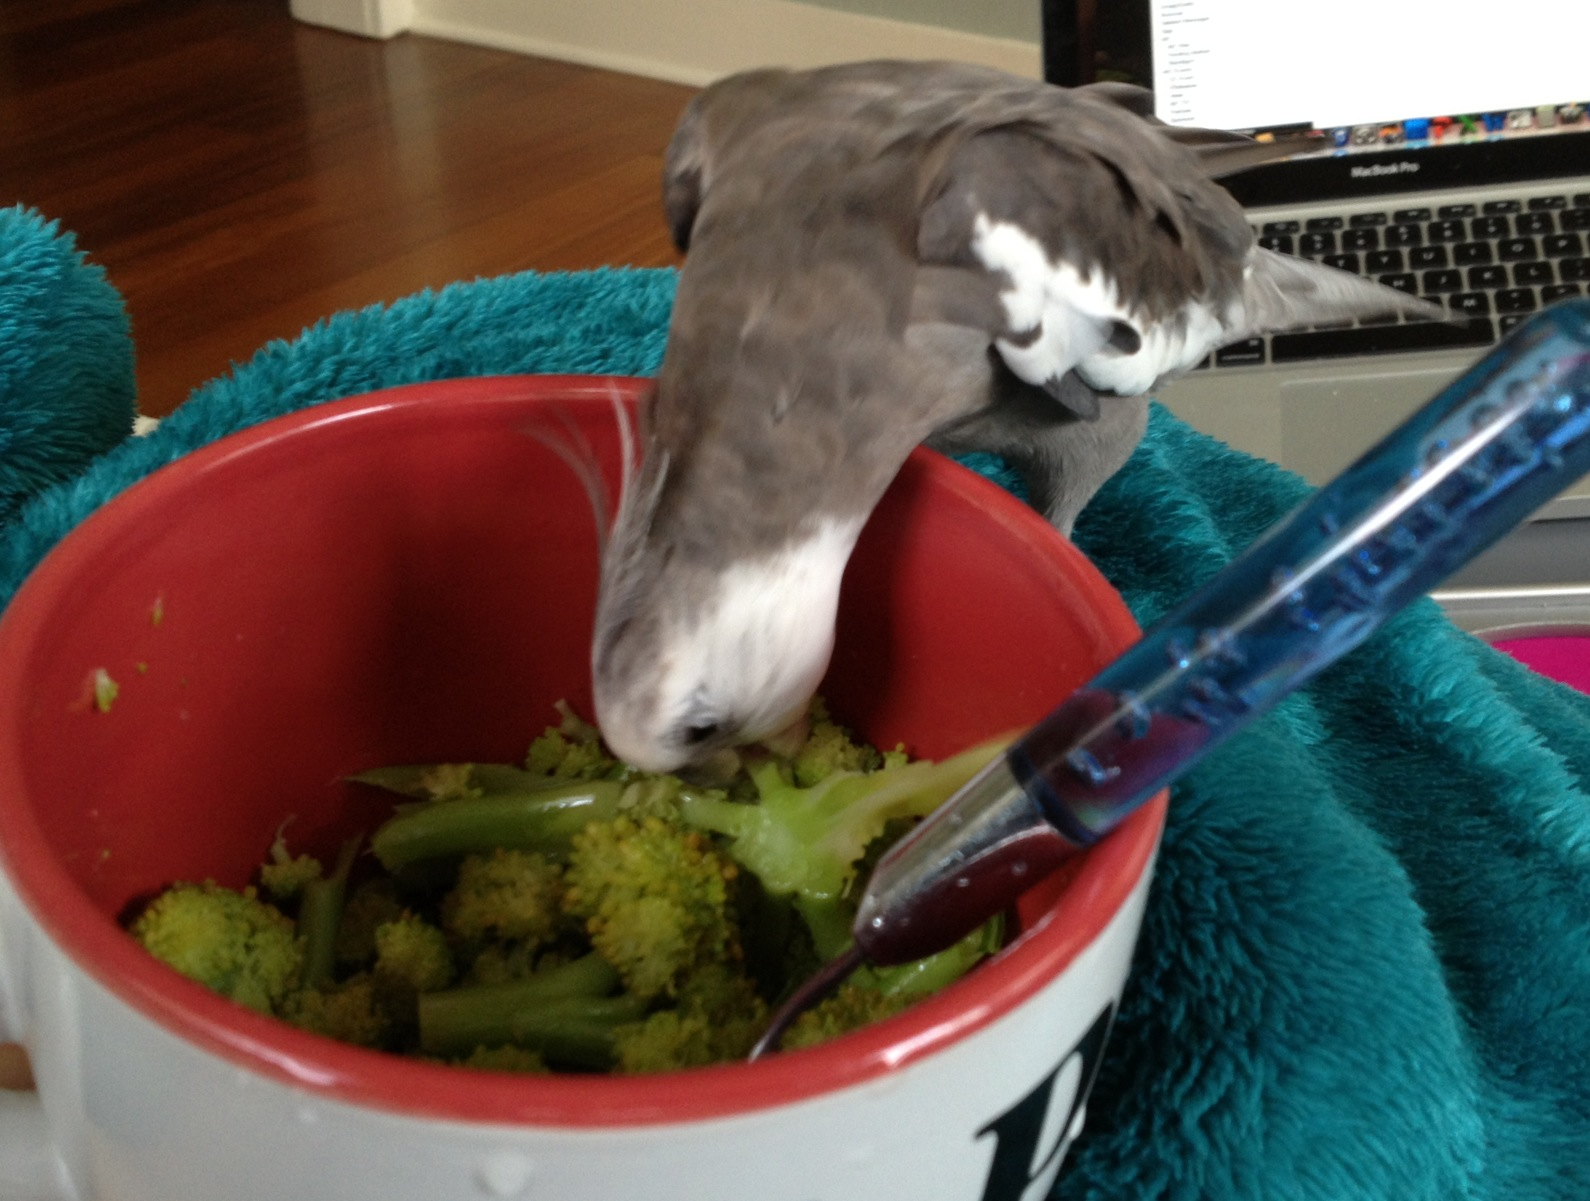 Broccoli in a bowl! My favorite!